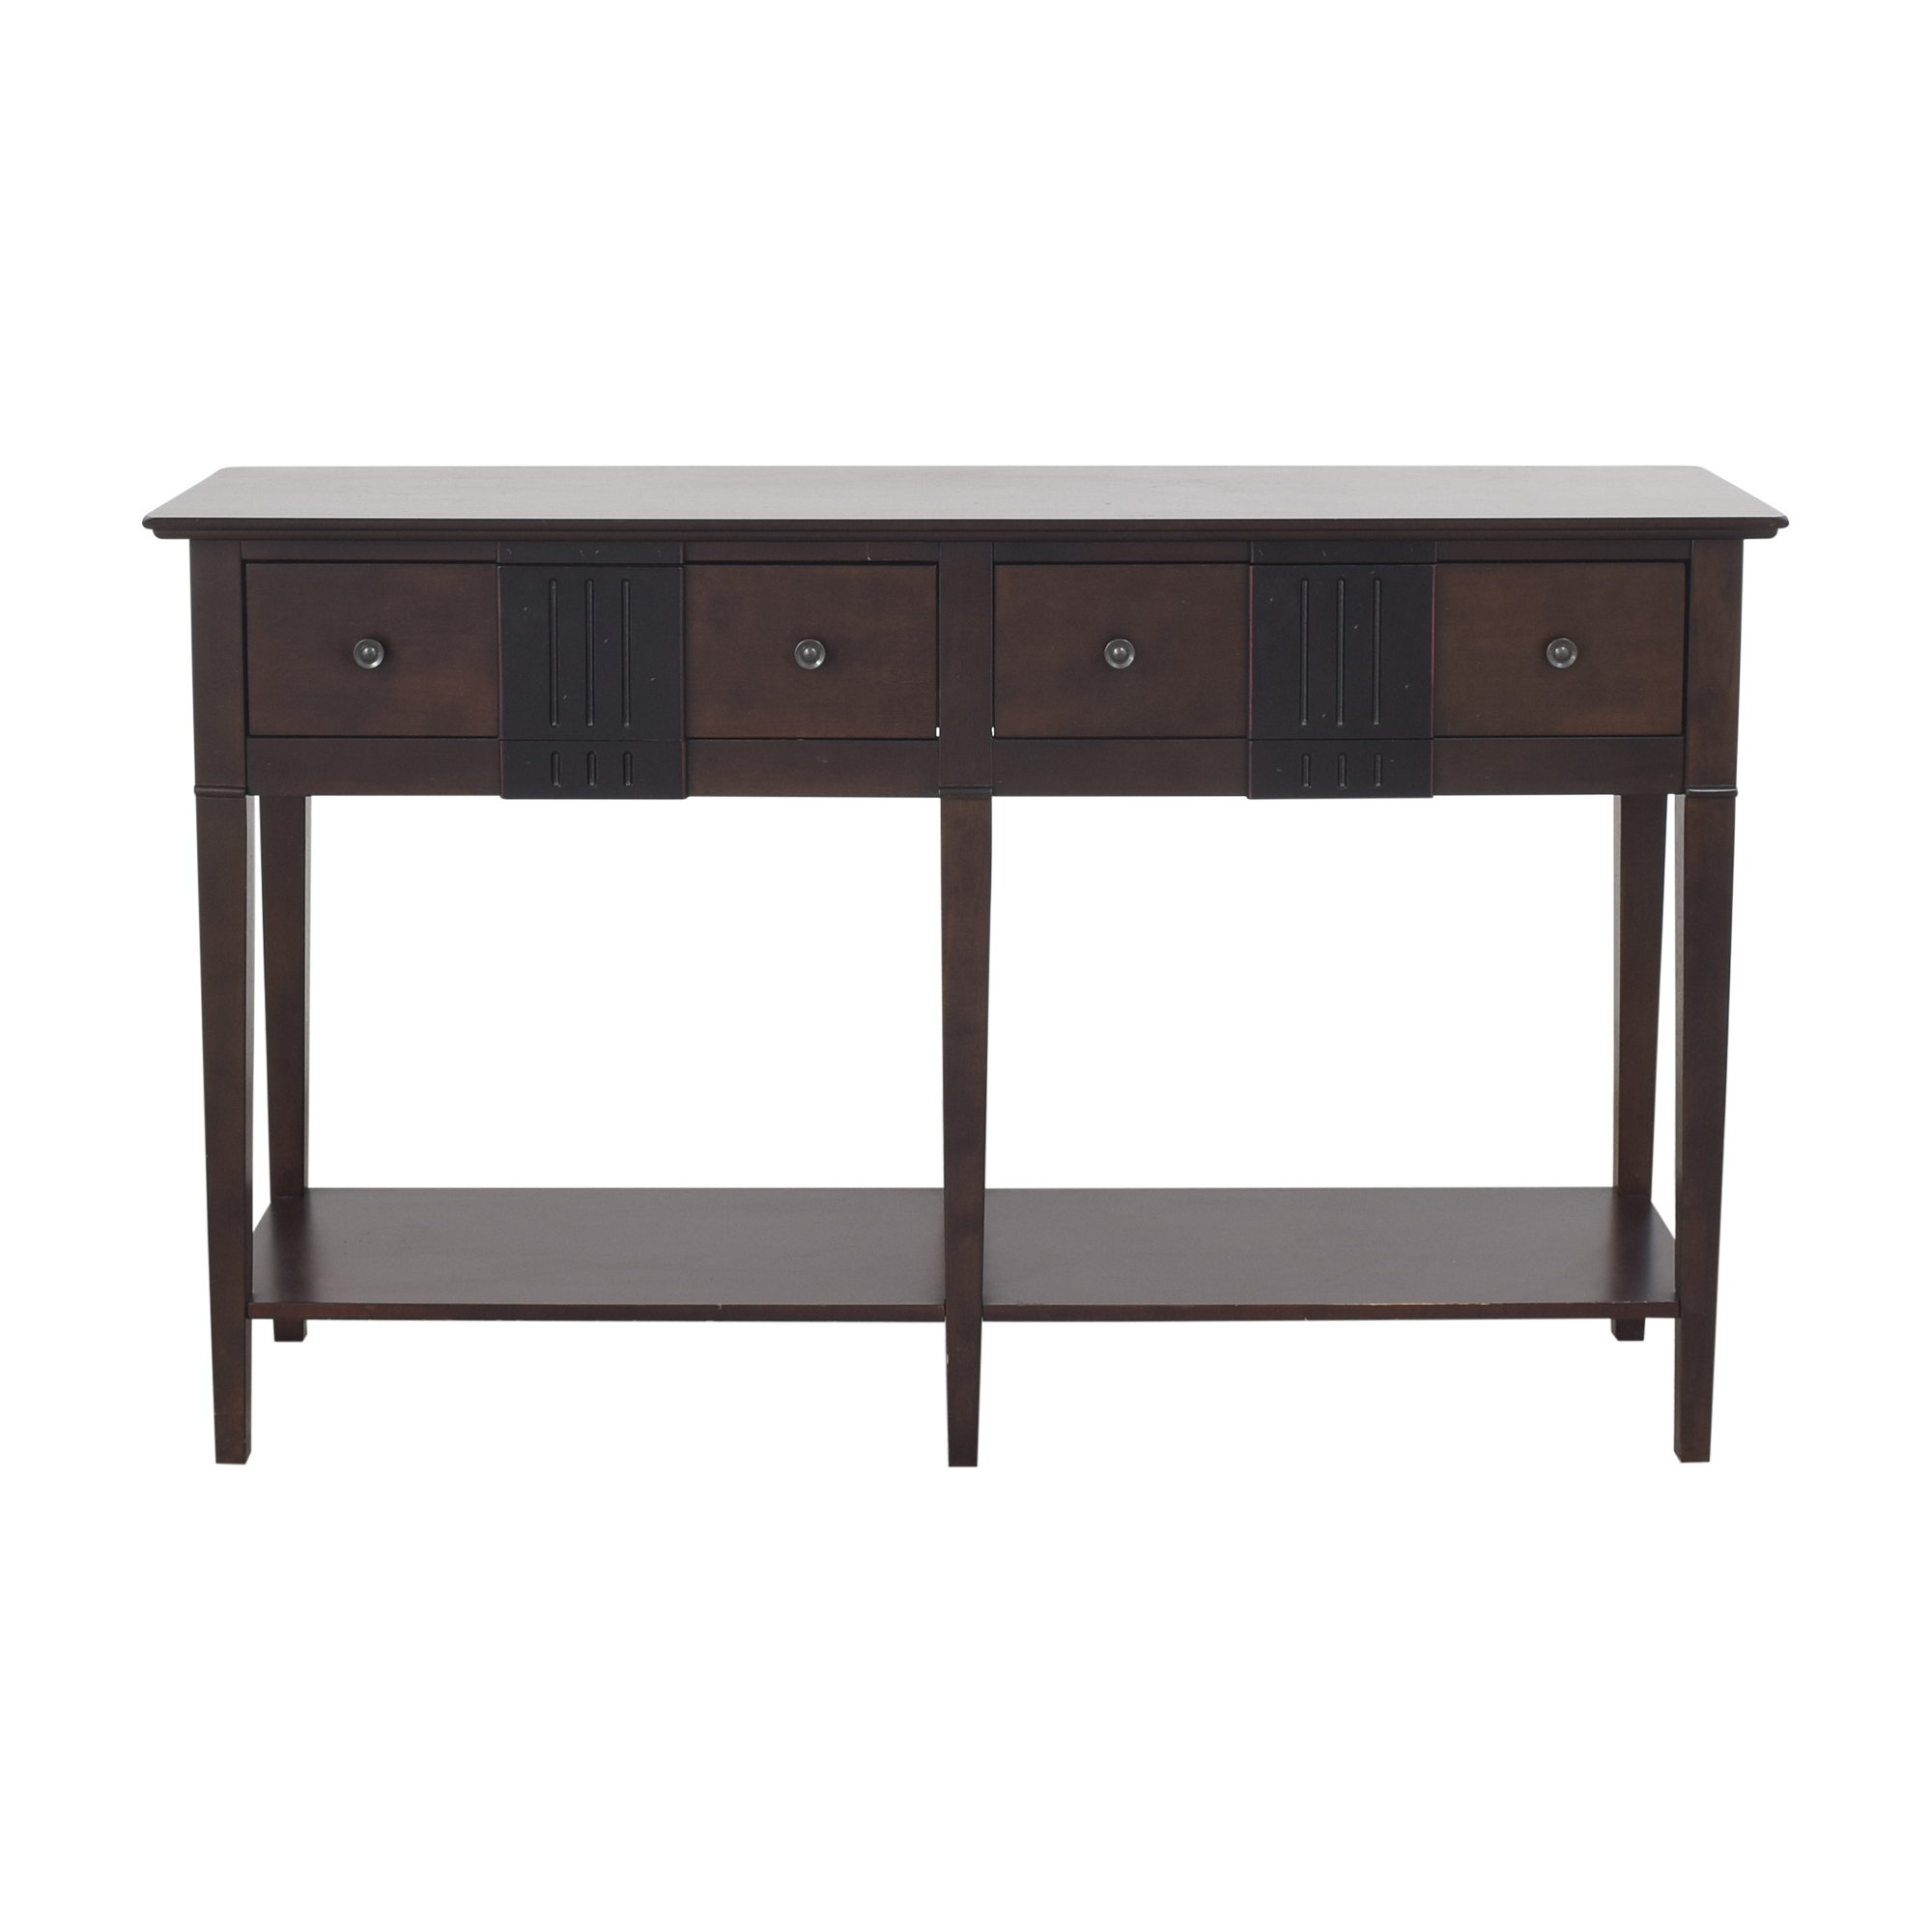 Pier 1 Pier 1 Two Drawer Console Table second hand